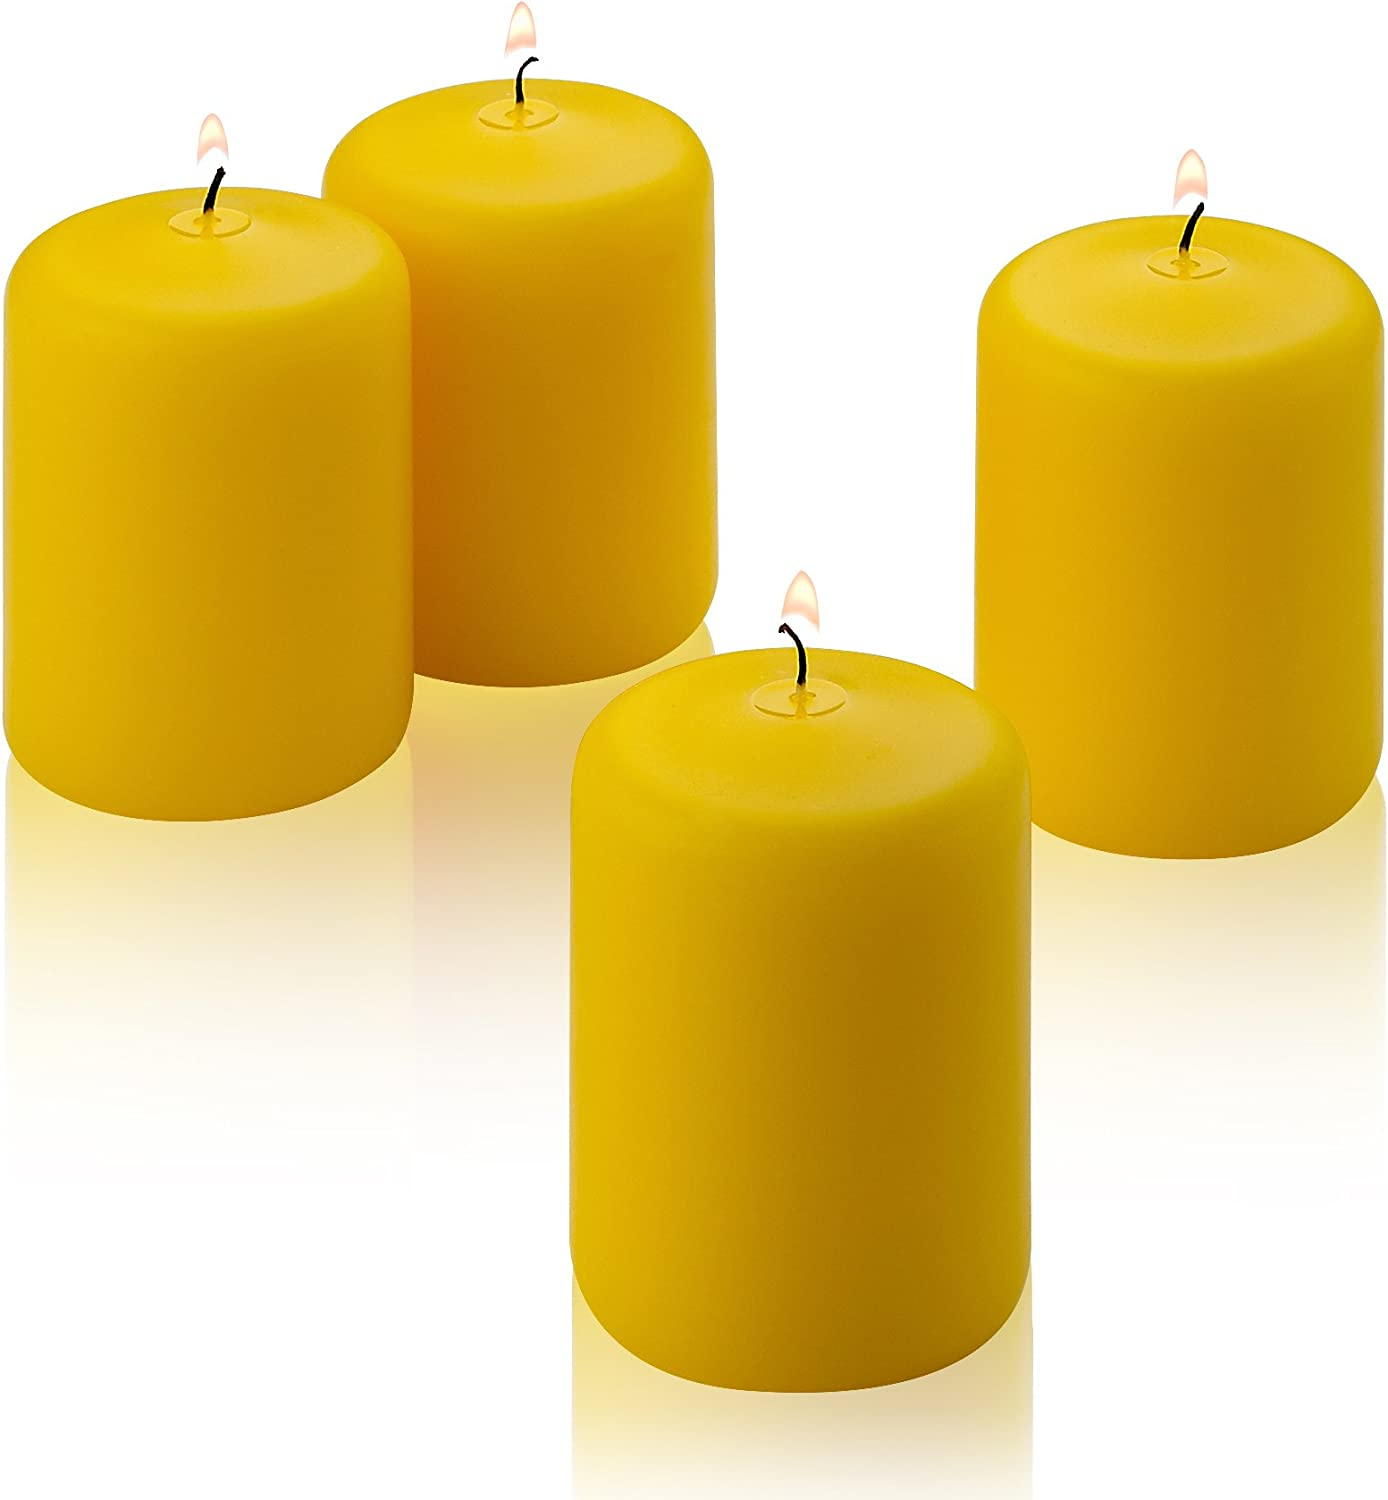 6 inch Tall Made in USA Citronella Pillar Candle Set of 4 Summer Scented Yellow Citronella Candles 2 inch Thick 36 Hour Burn Time for Indoor//Outdoor Use